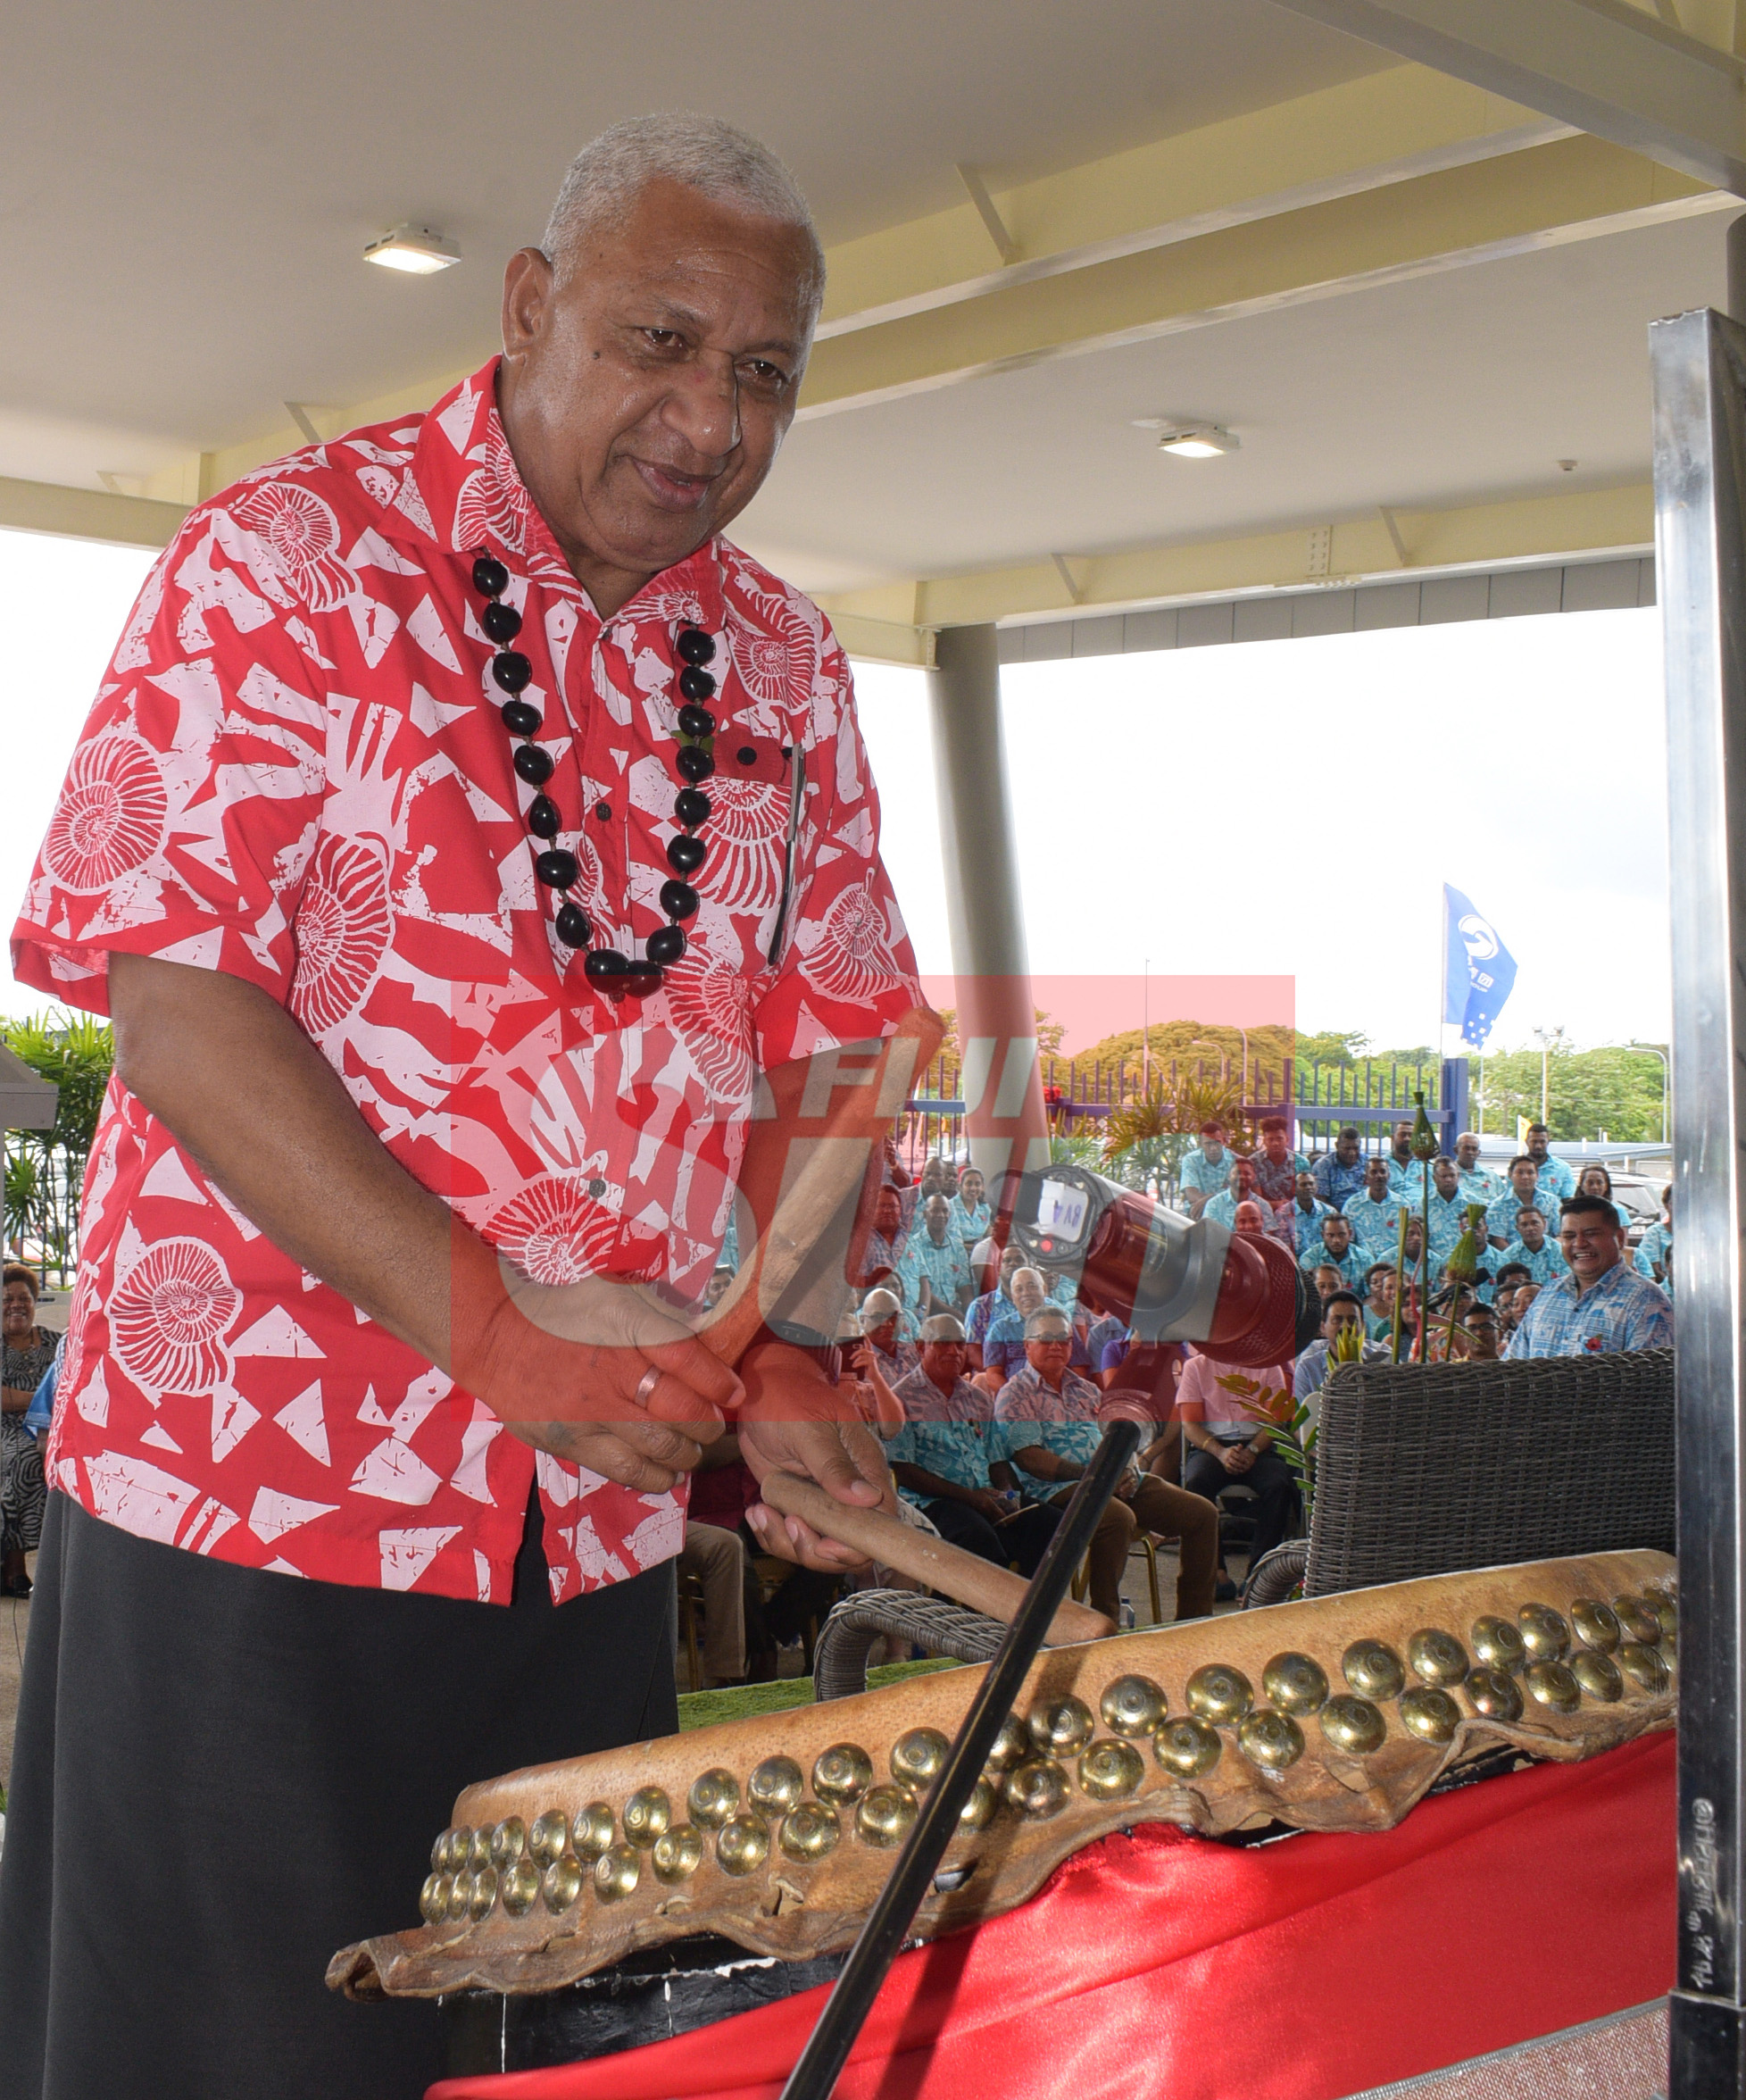 Prime Minister Voreqe Bainimarama beat the drum to mark the opening of the renovated Vodafone Arena on November 8, 2019. Photo: Ronald Kumar.